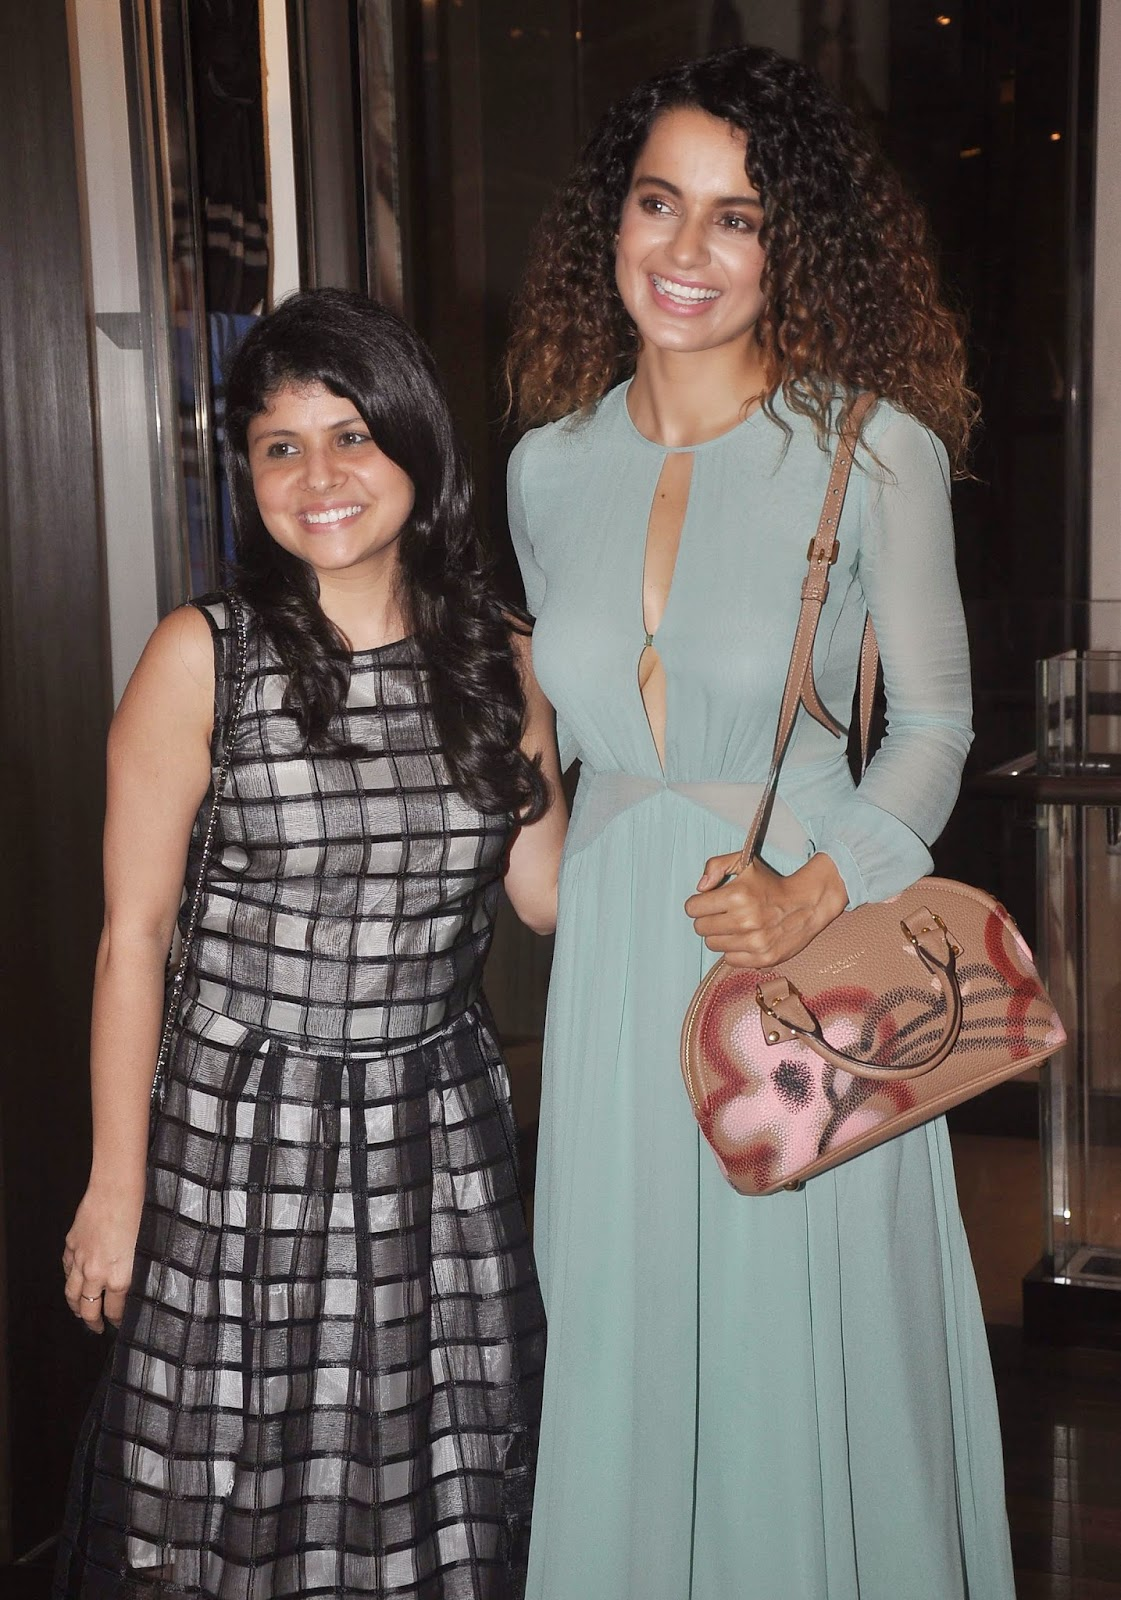 http://1.bp.blogspot.com/-SC62AFi57yM/U924A1QPtjI/AAAAAAAAqXk/VwS2RUvKdNY/s1600/Kangana+Ranaut+Unveils+The+Latest+Issue+Of+Grazia+Magazine+Images+(3).jpg